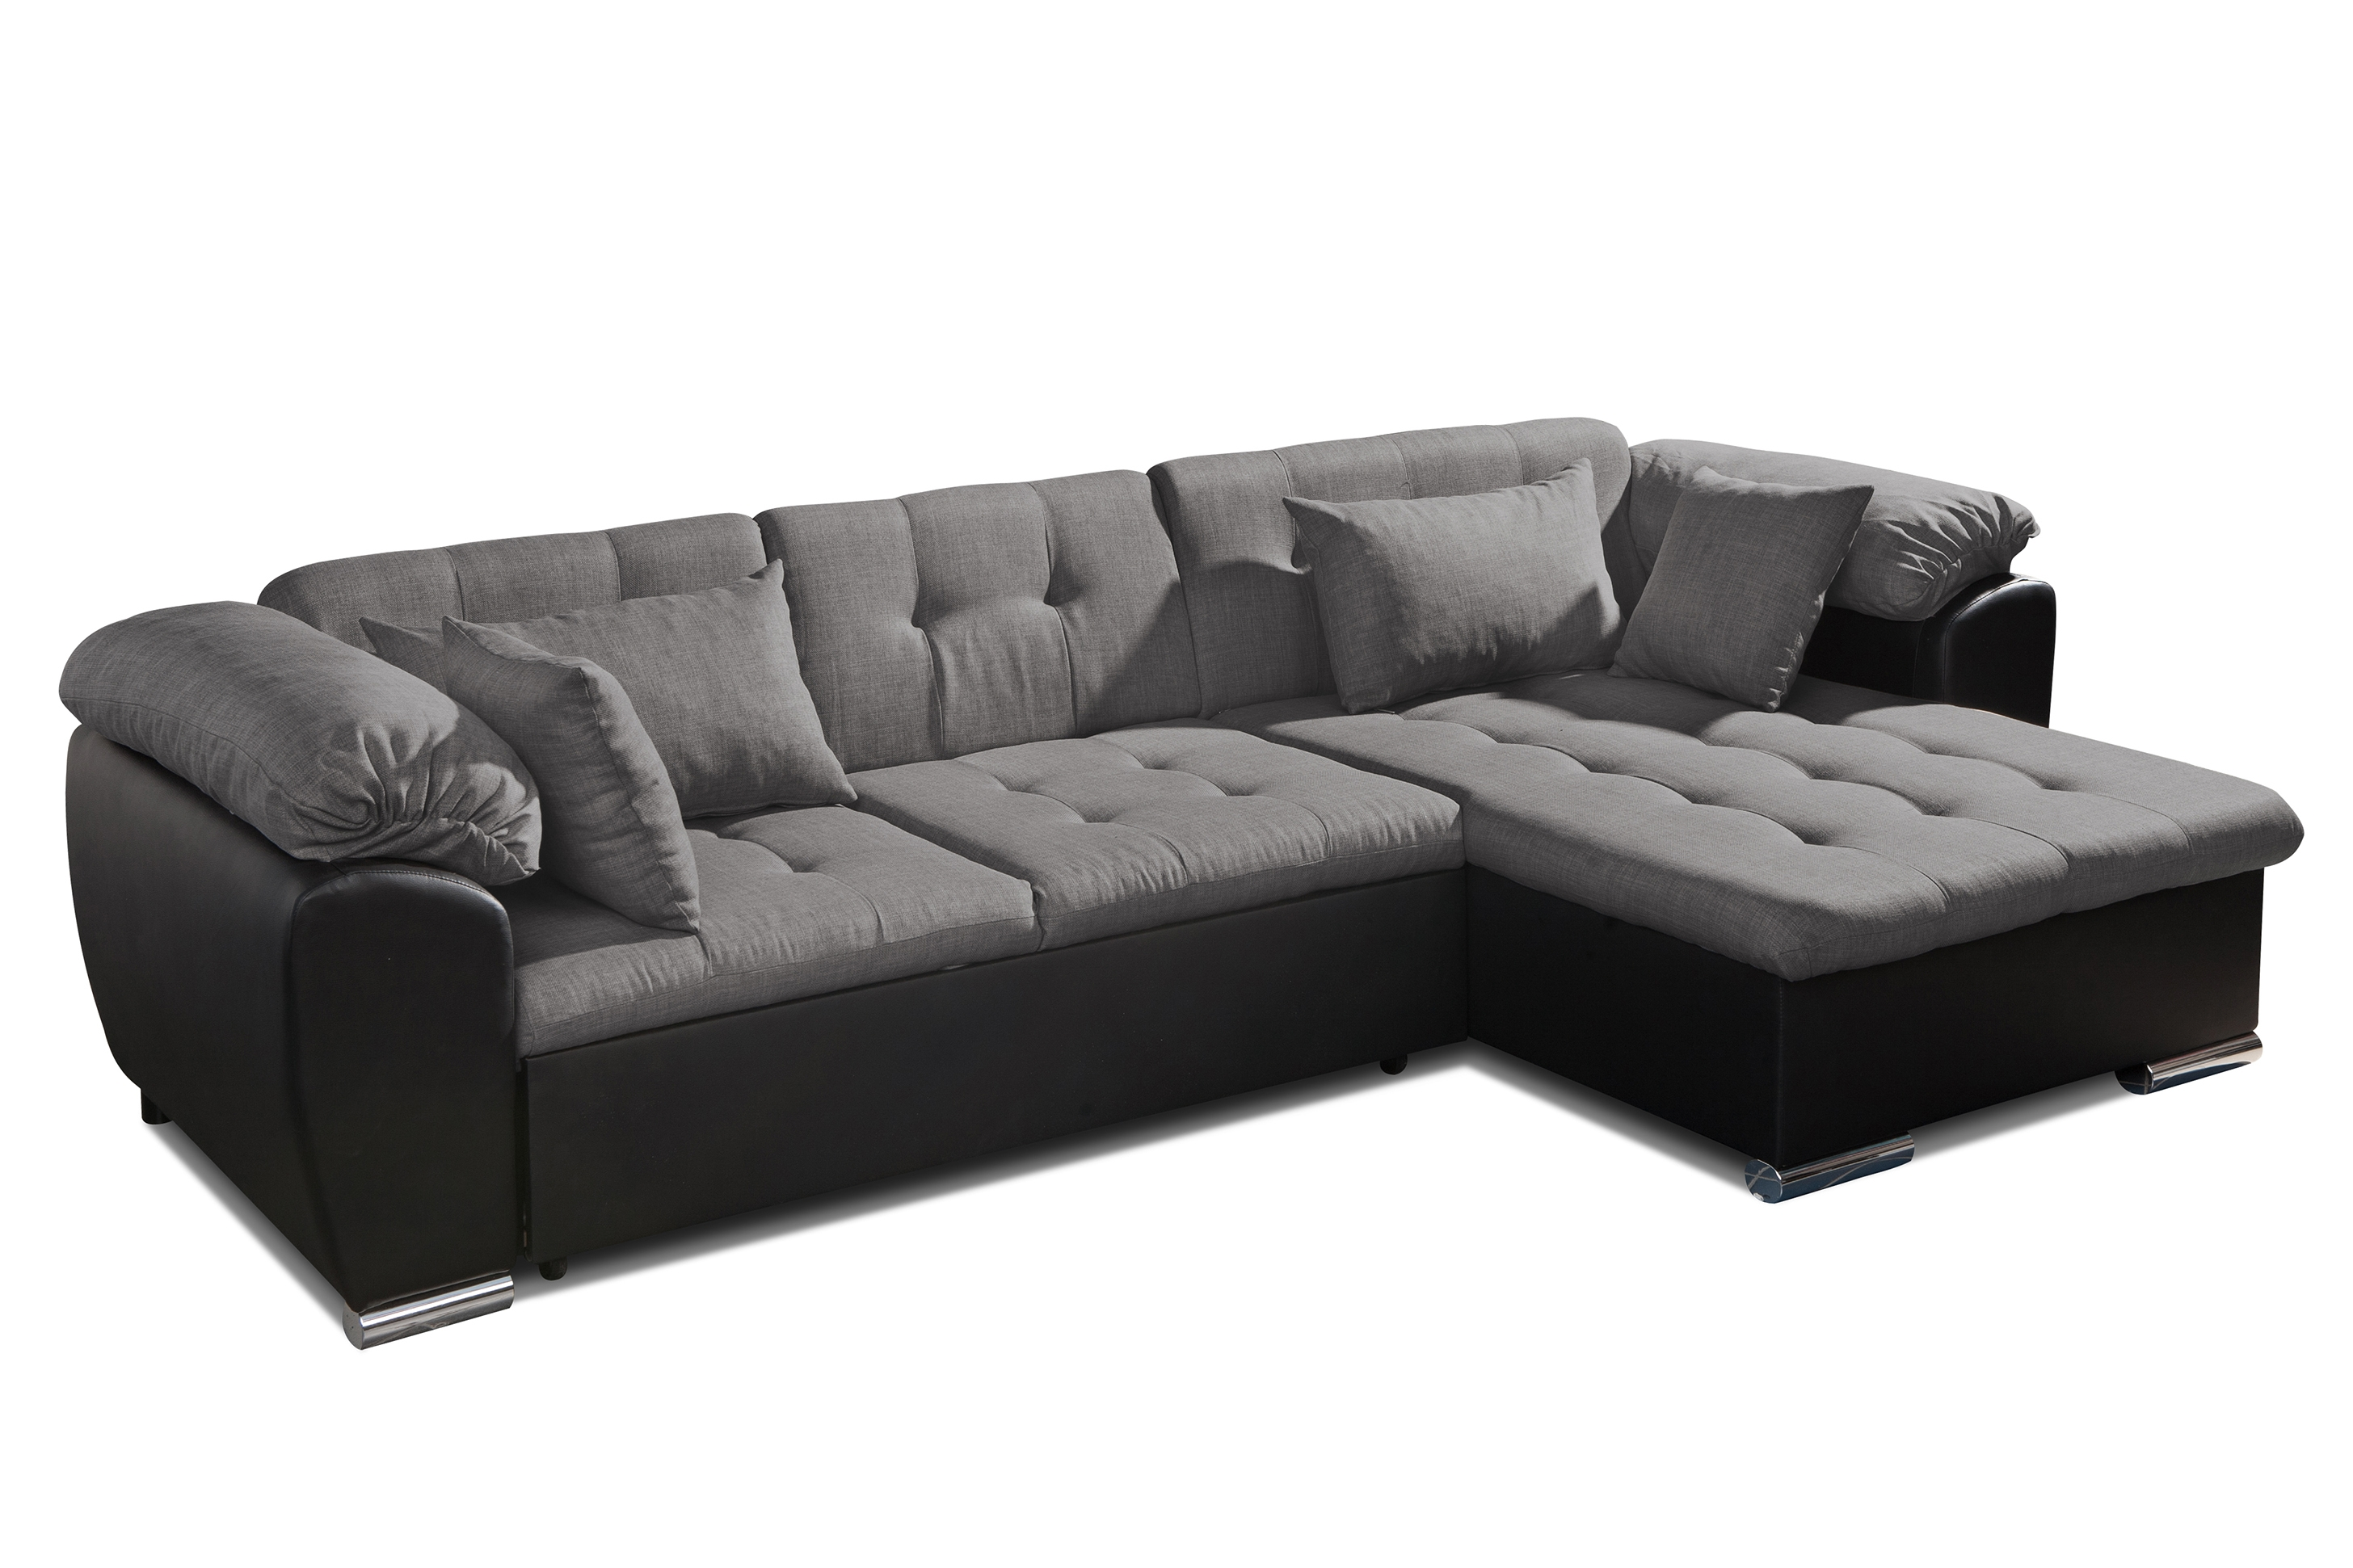 Corner Sofa Bed With Storage Trendy Design Sofa Bed Miami Eric In Leather Corner Sofa Bed (Image 3 of 15)